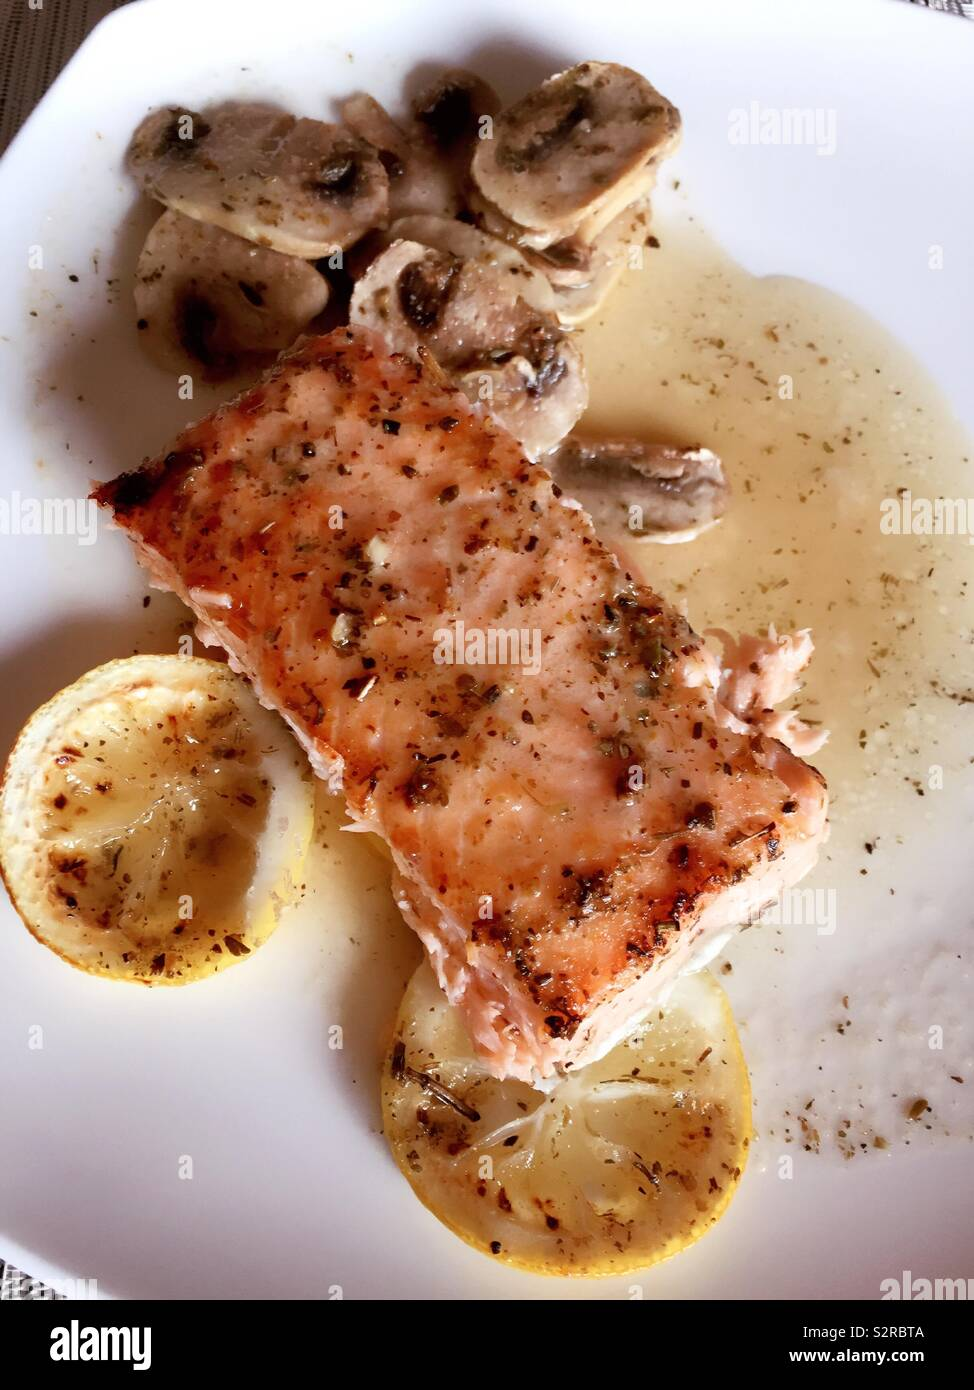 Gourmet entrée of broiled salmon fillet with lemon slices and fresh mushrooms, USA - Stock Image